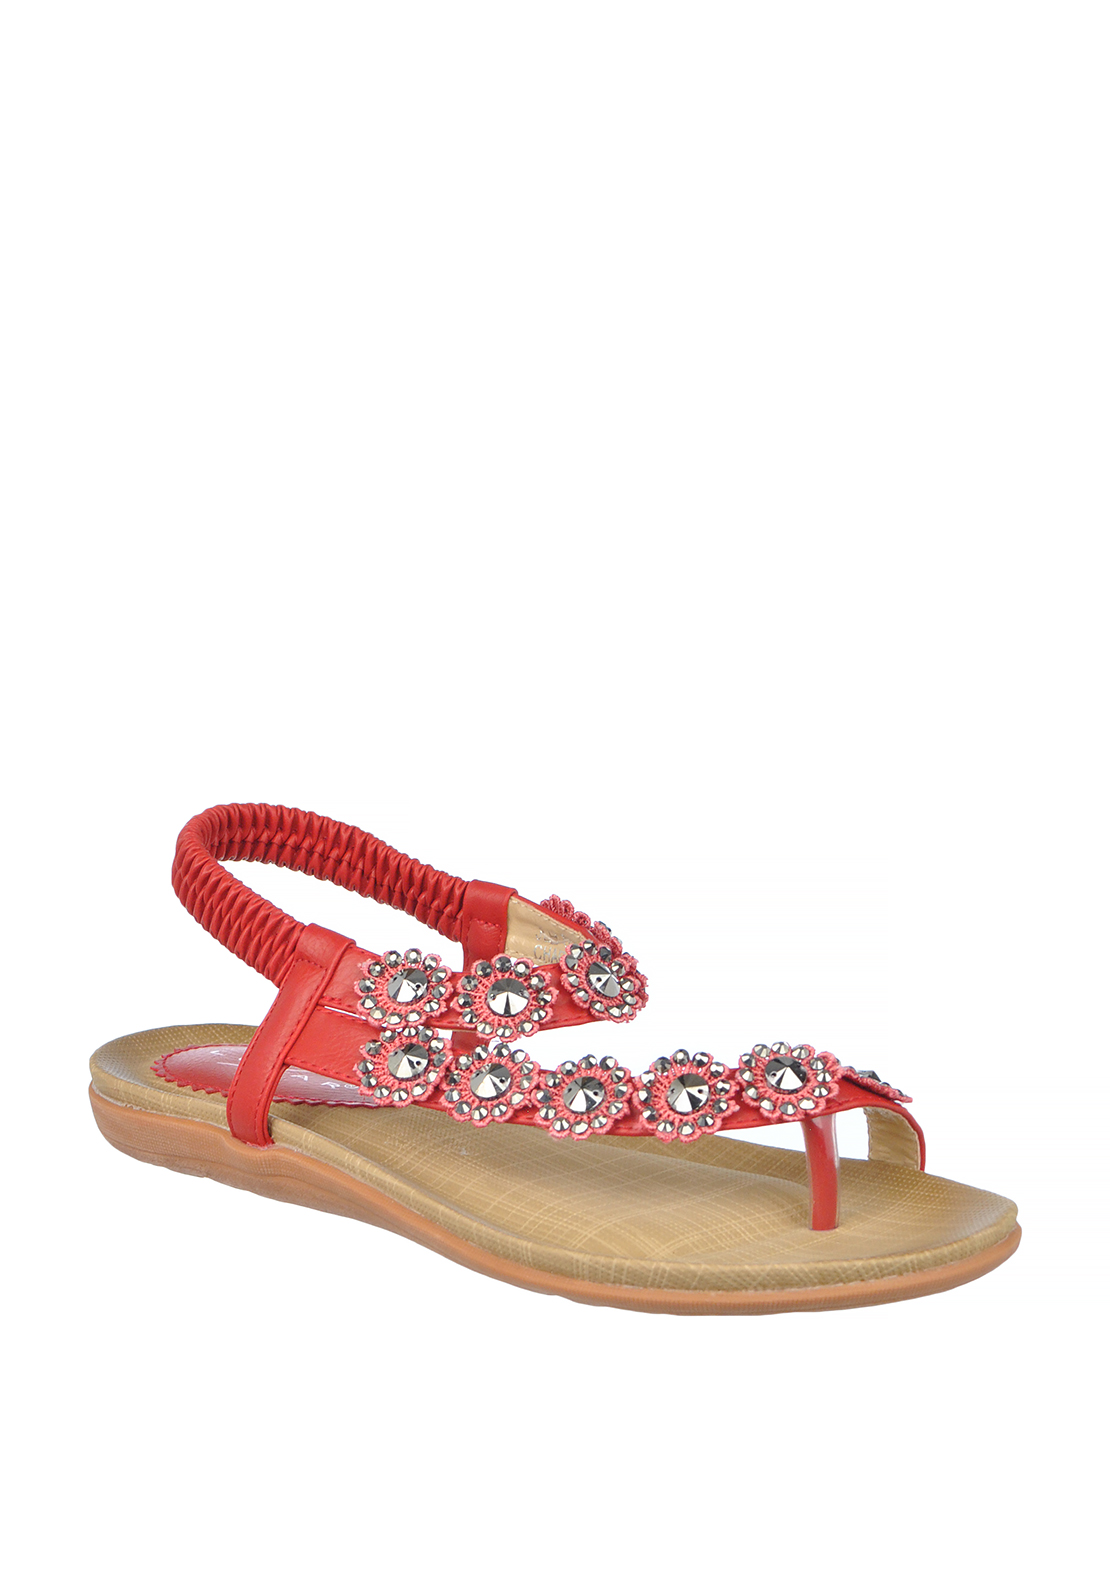 Lunar Charlotte Flower Embellished Toe Post Sandals, Red